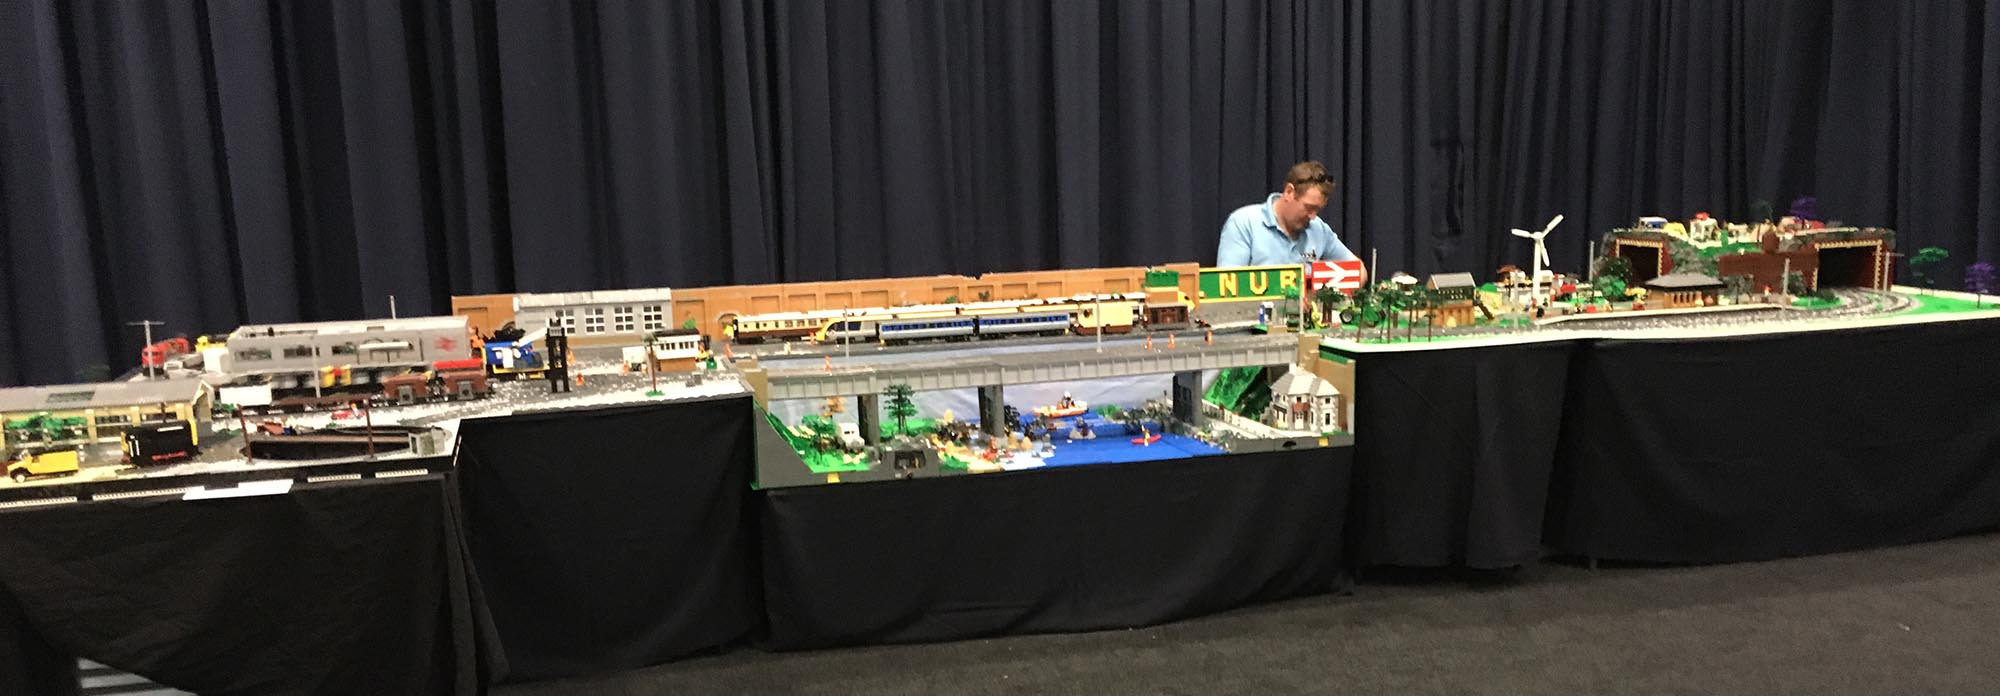 LEGO train displays in the UK